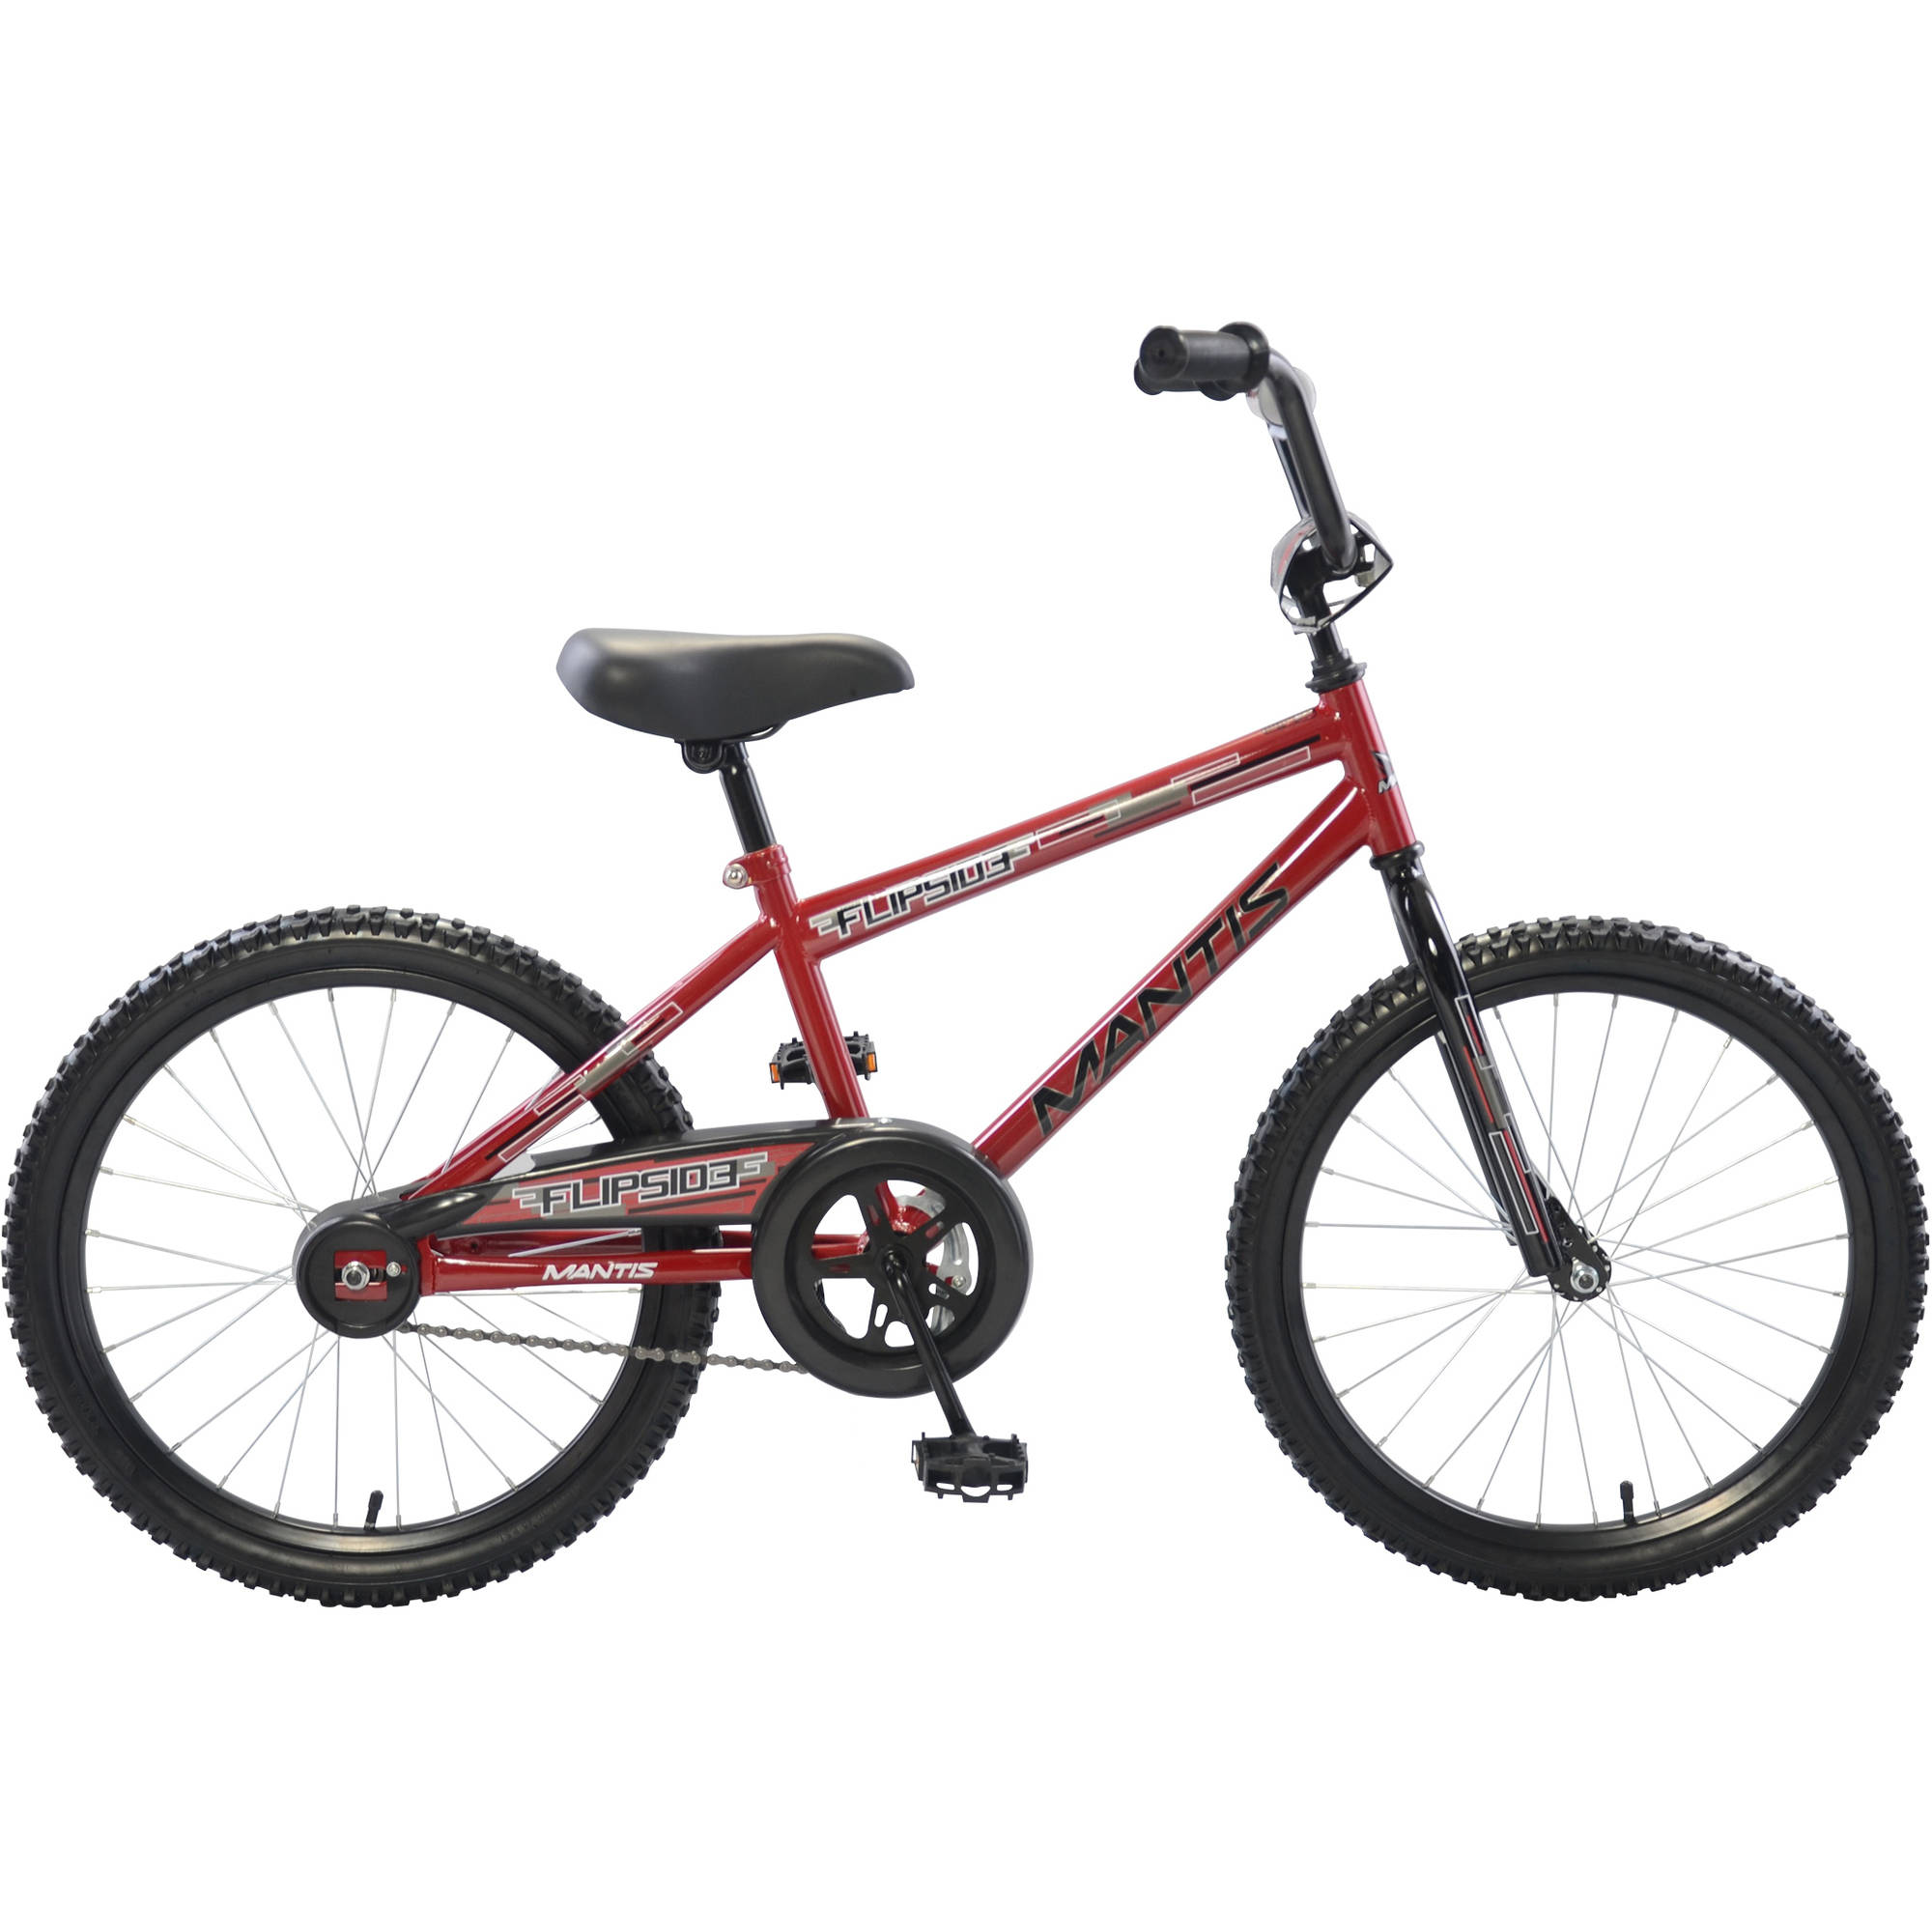 Mantis Flipside 20 Kids Bicycle